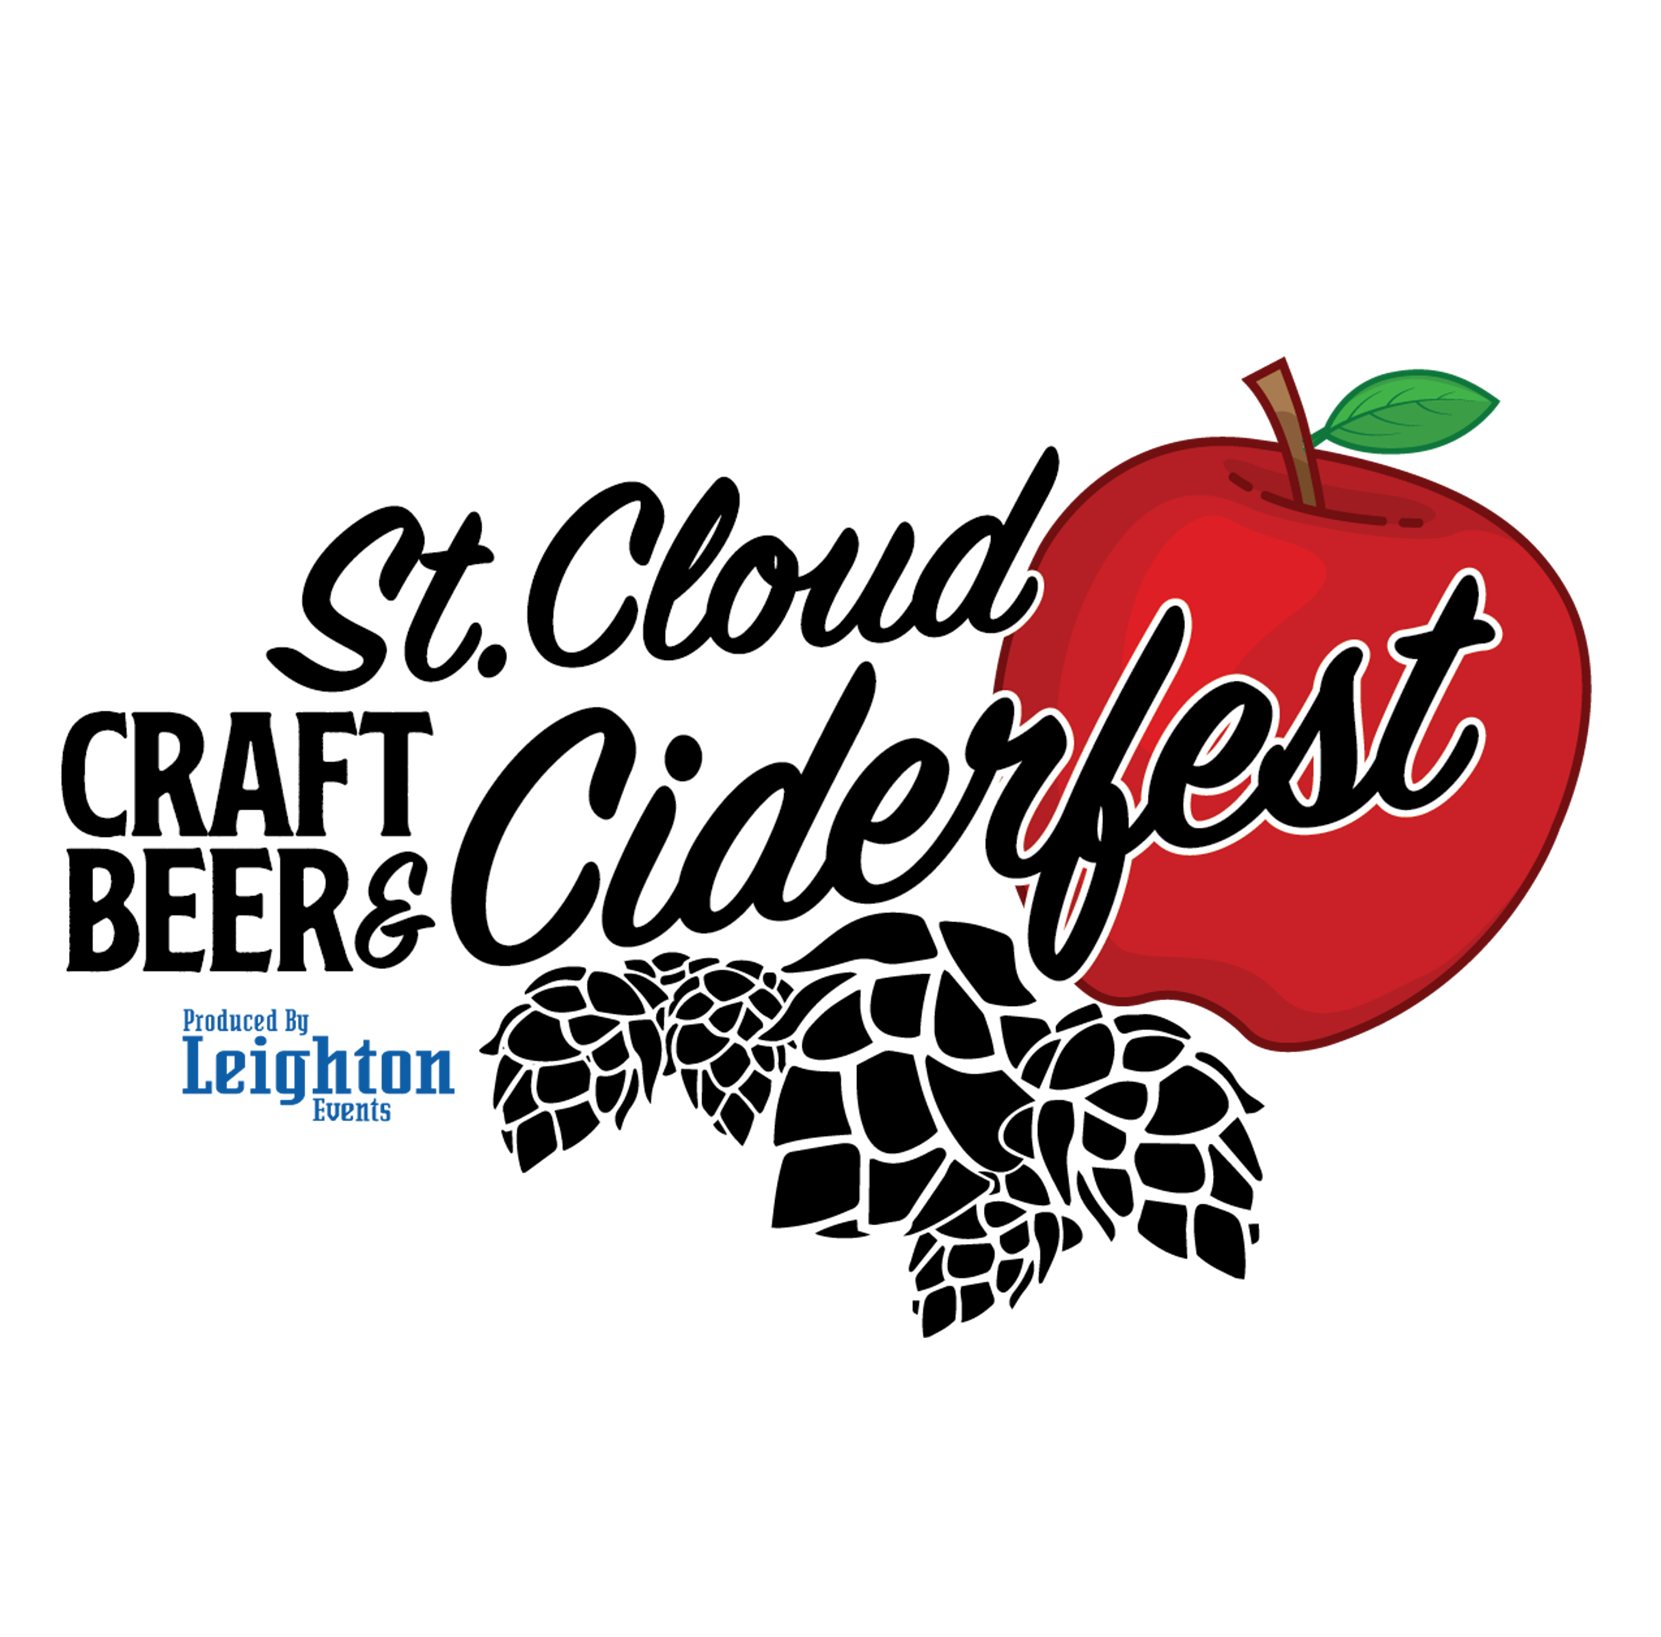 St. Cloud Craft Beer & CiderFest